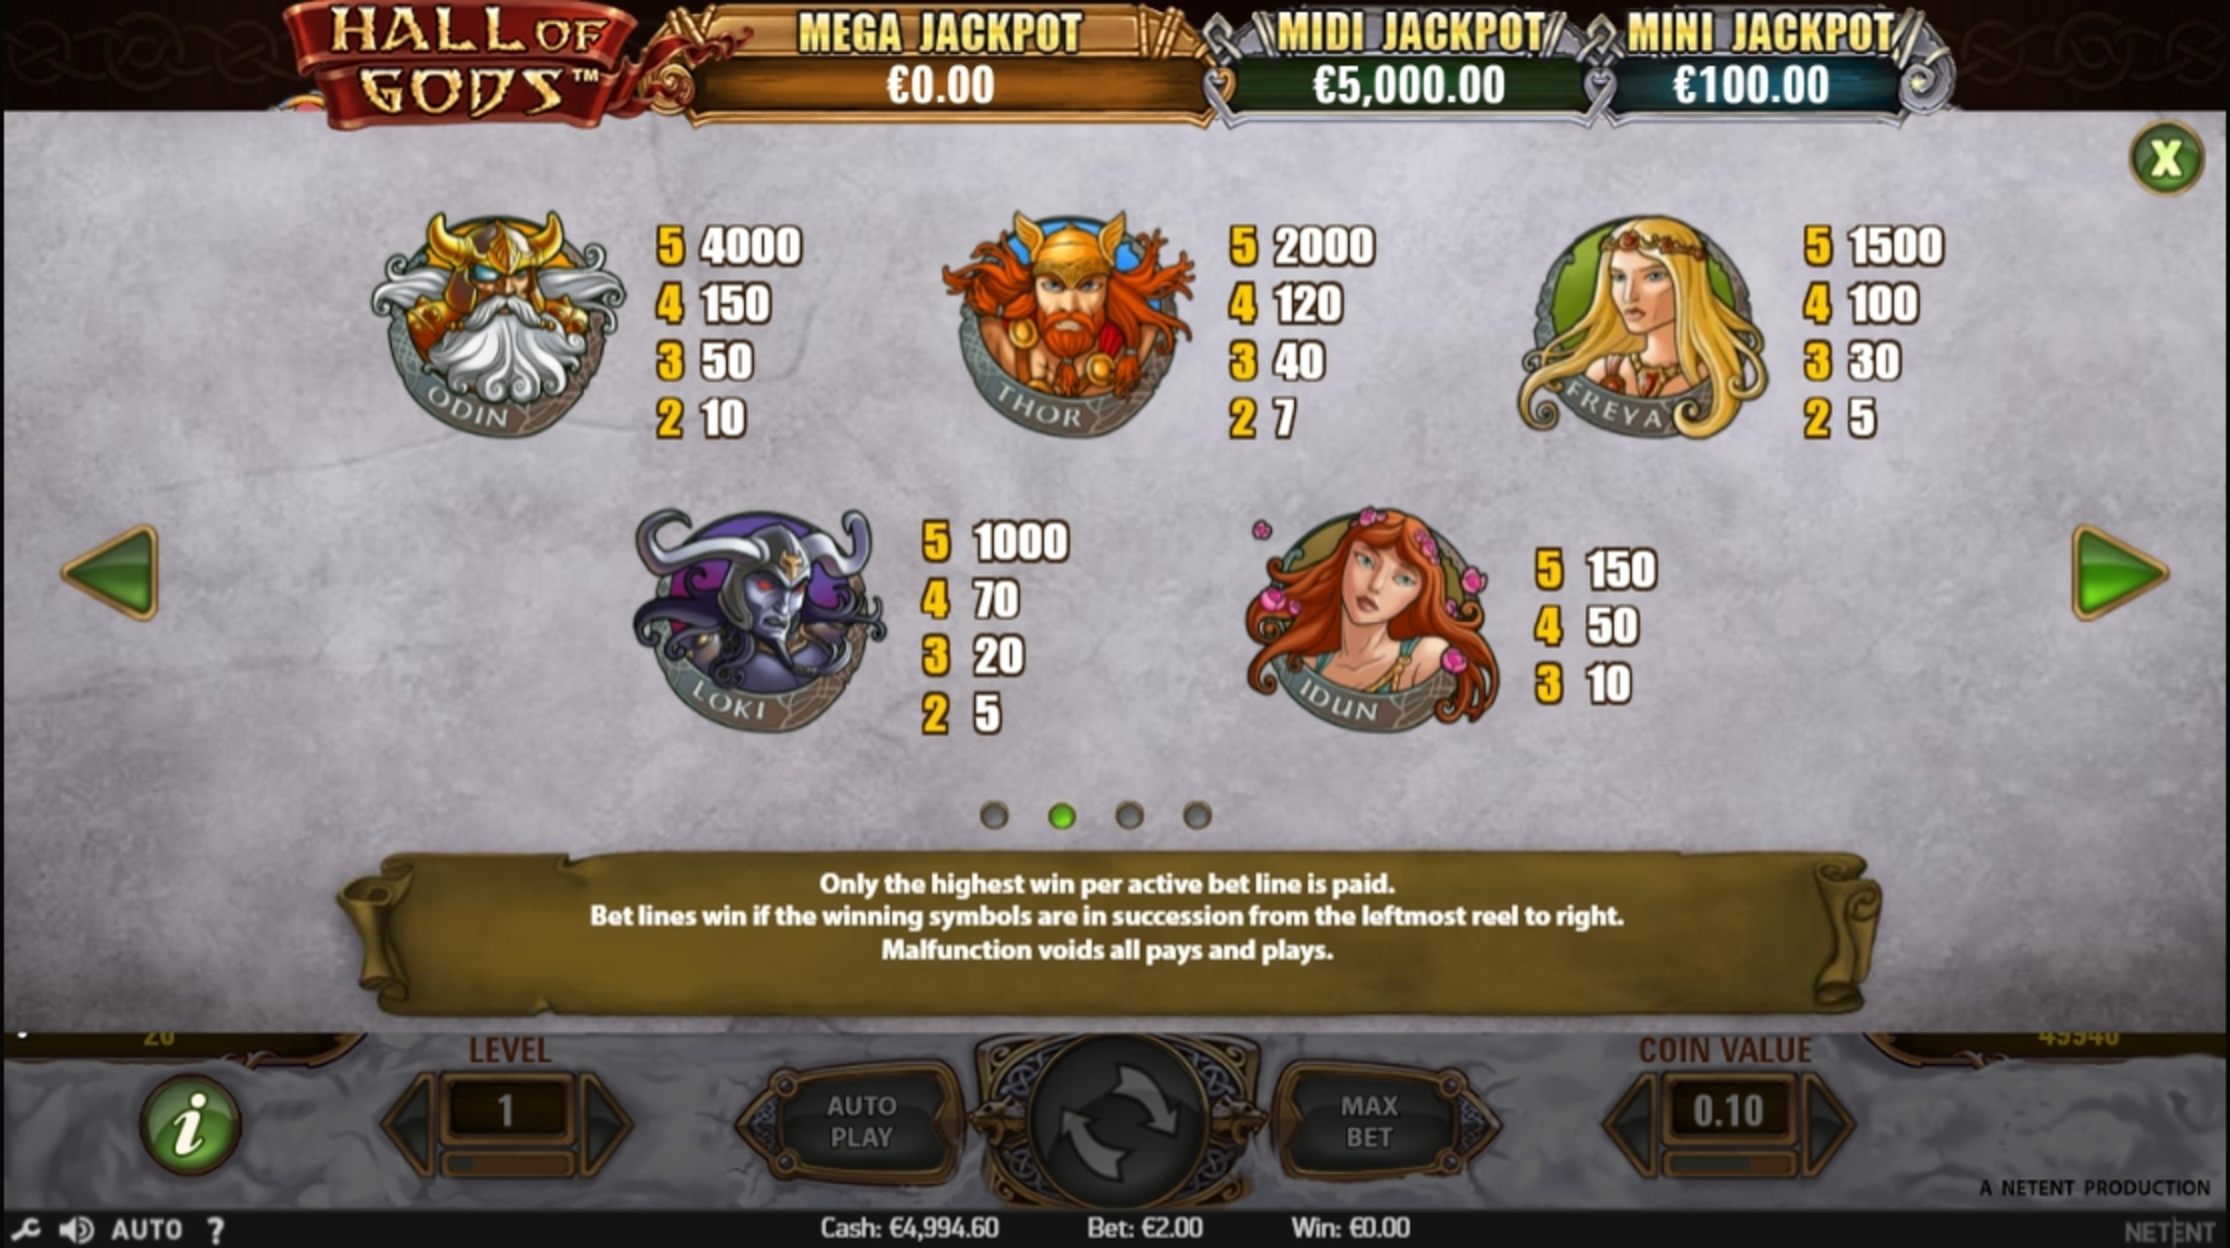 Info of Hall of Gods Slot Game by NetEnt